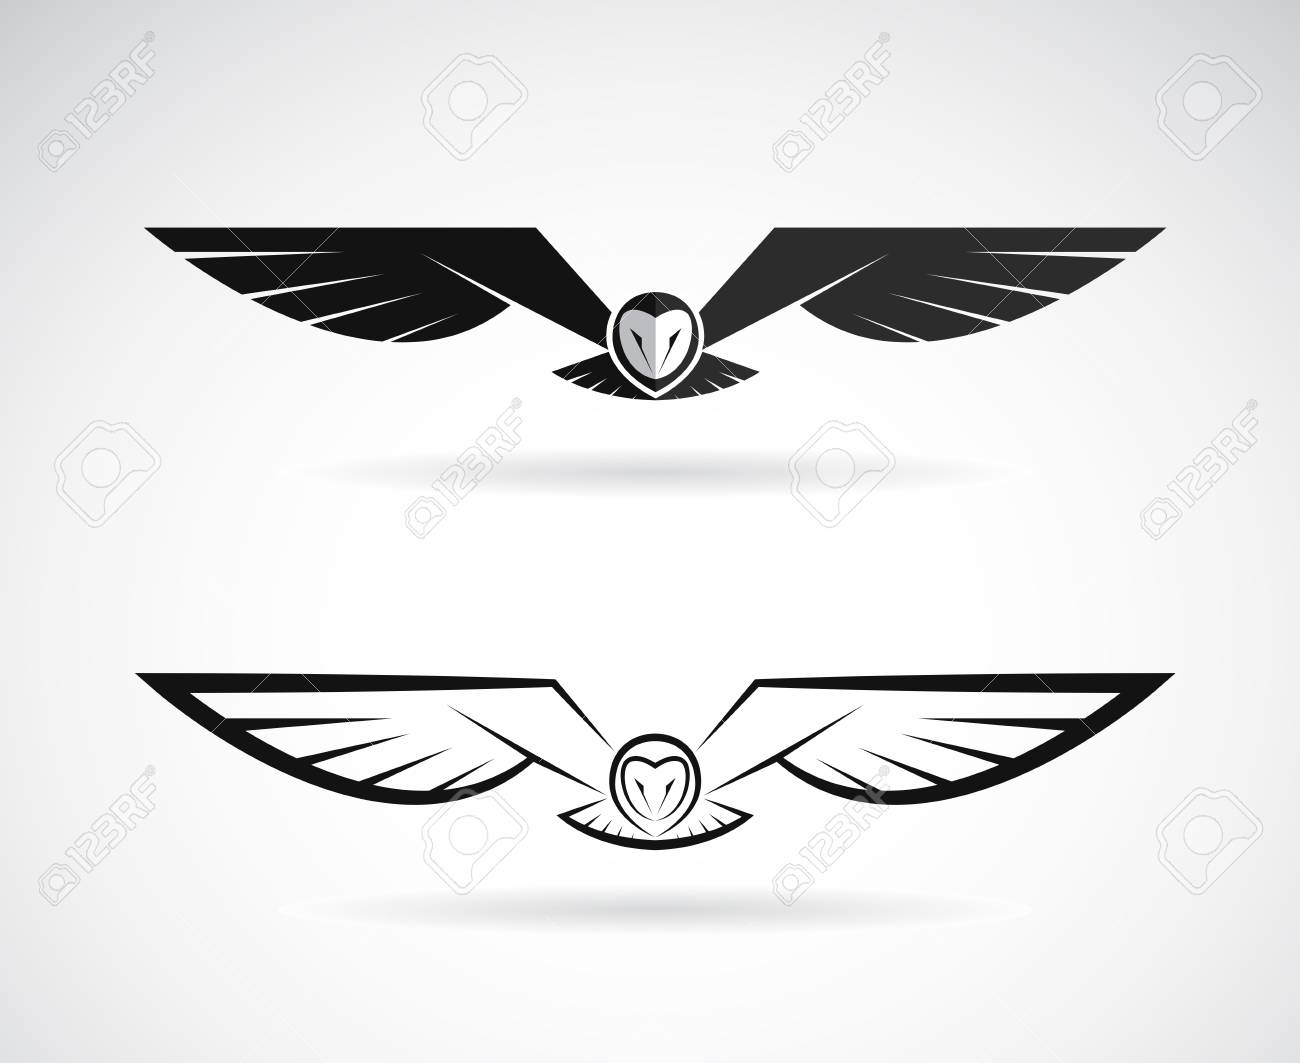 Vector of an owl design on a white background. - 97117076